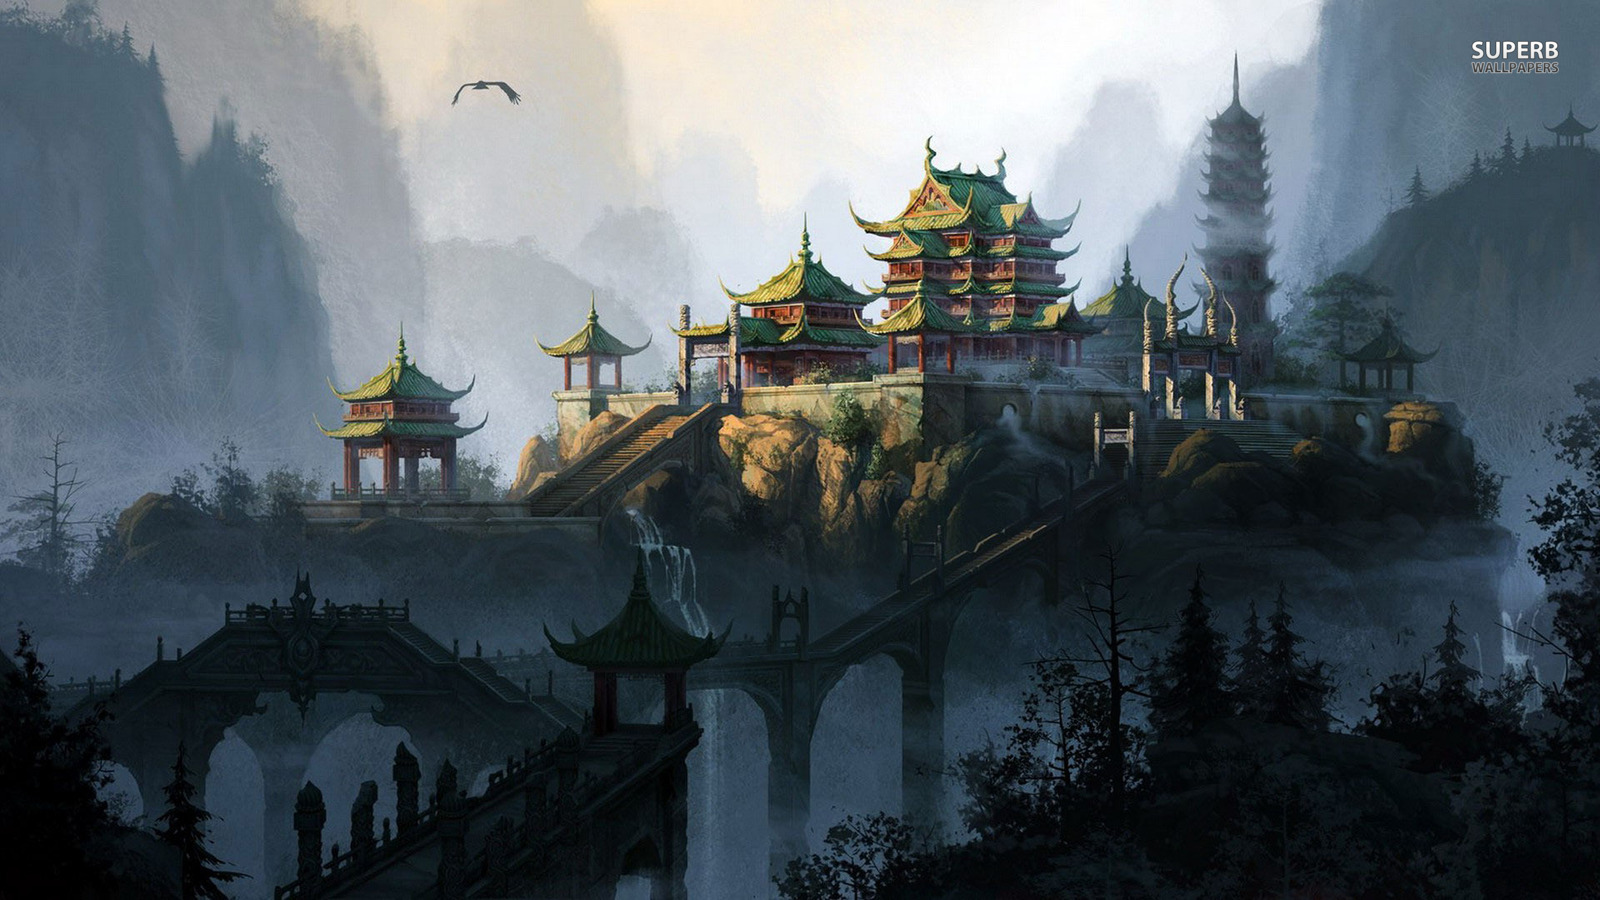 Fantasy Images Temple HD Wallpaper And Background Photos